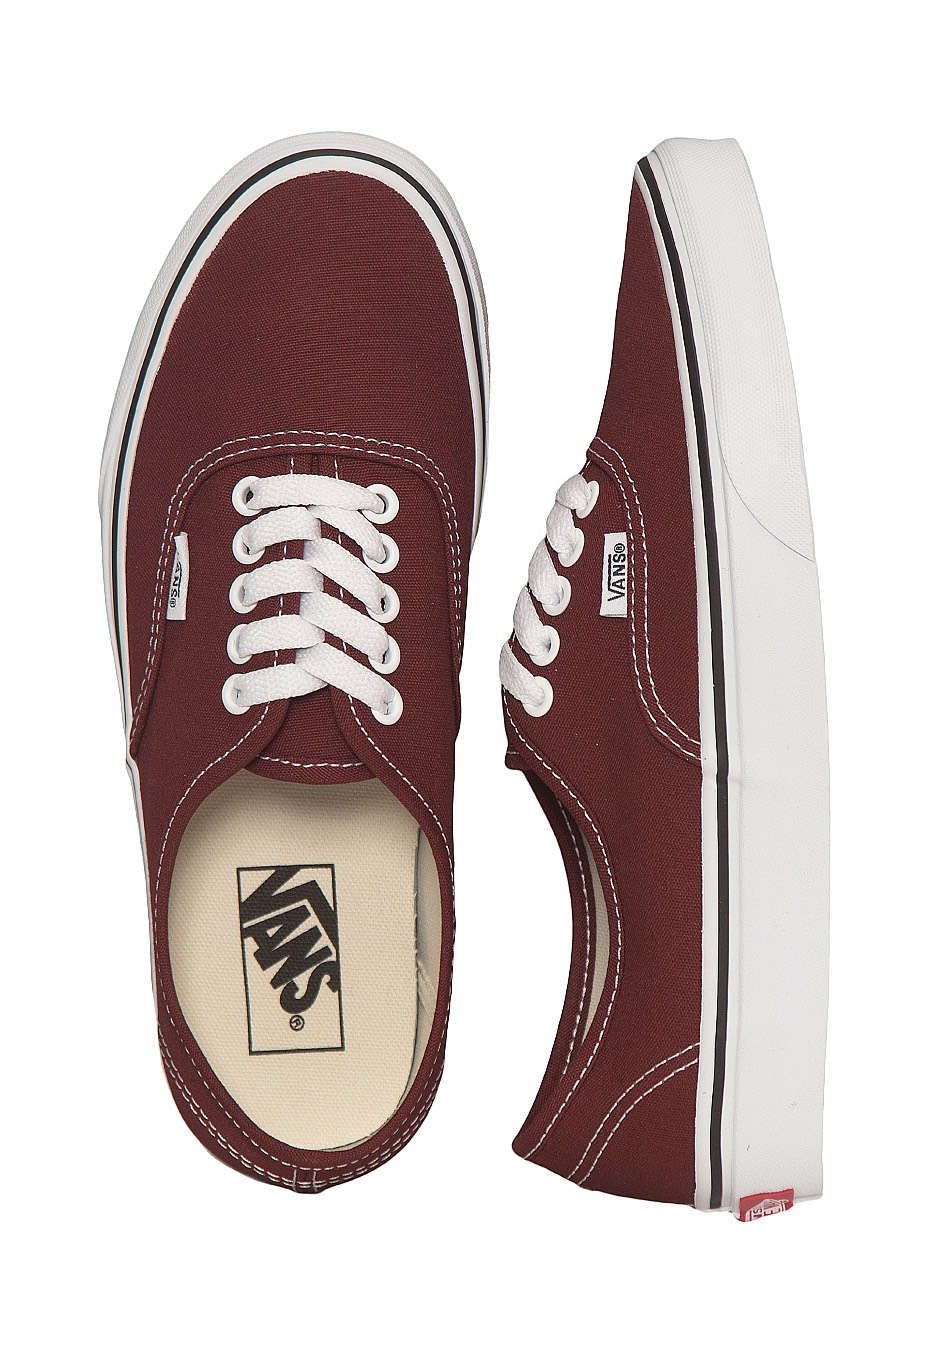 Vans - Authentic Madder Brown True White - Girl Shoes - Impericon.com  Worldwide 7c1d07629